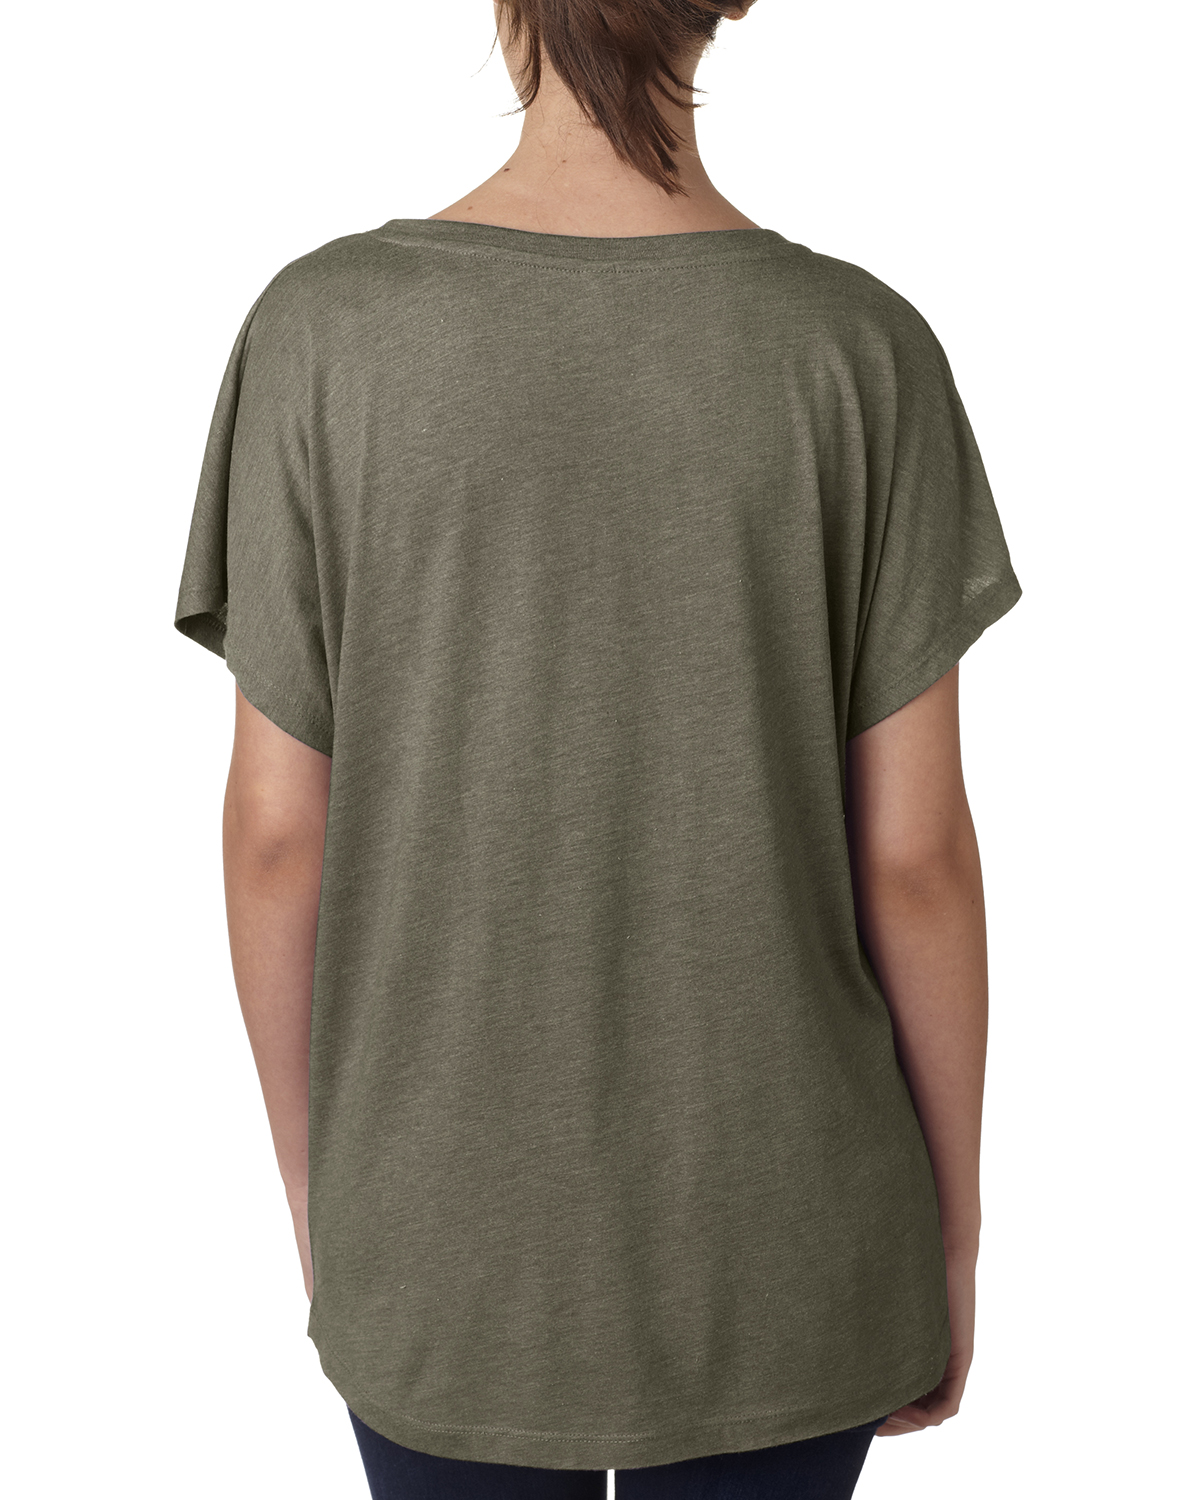 NEW-Next-Level-Junior-Fit-Triblend-Dolman-Sleeve-Relexed-Fit-T-Shirt-B-6760 thumbnail 21